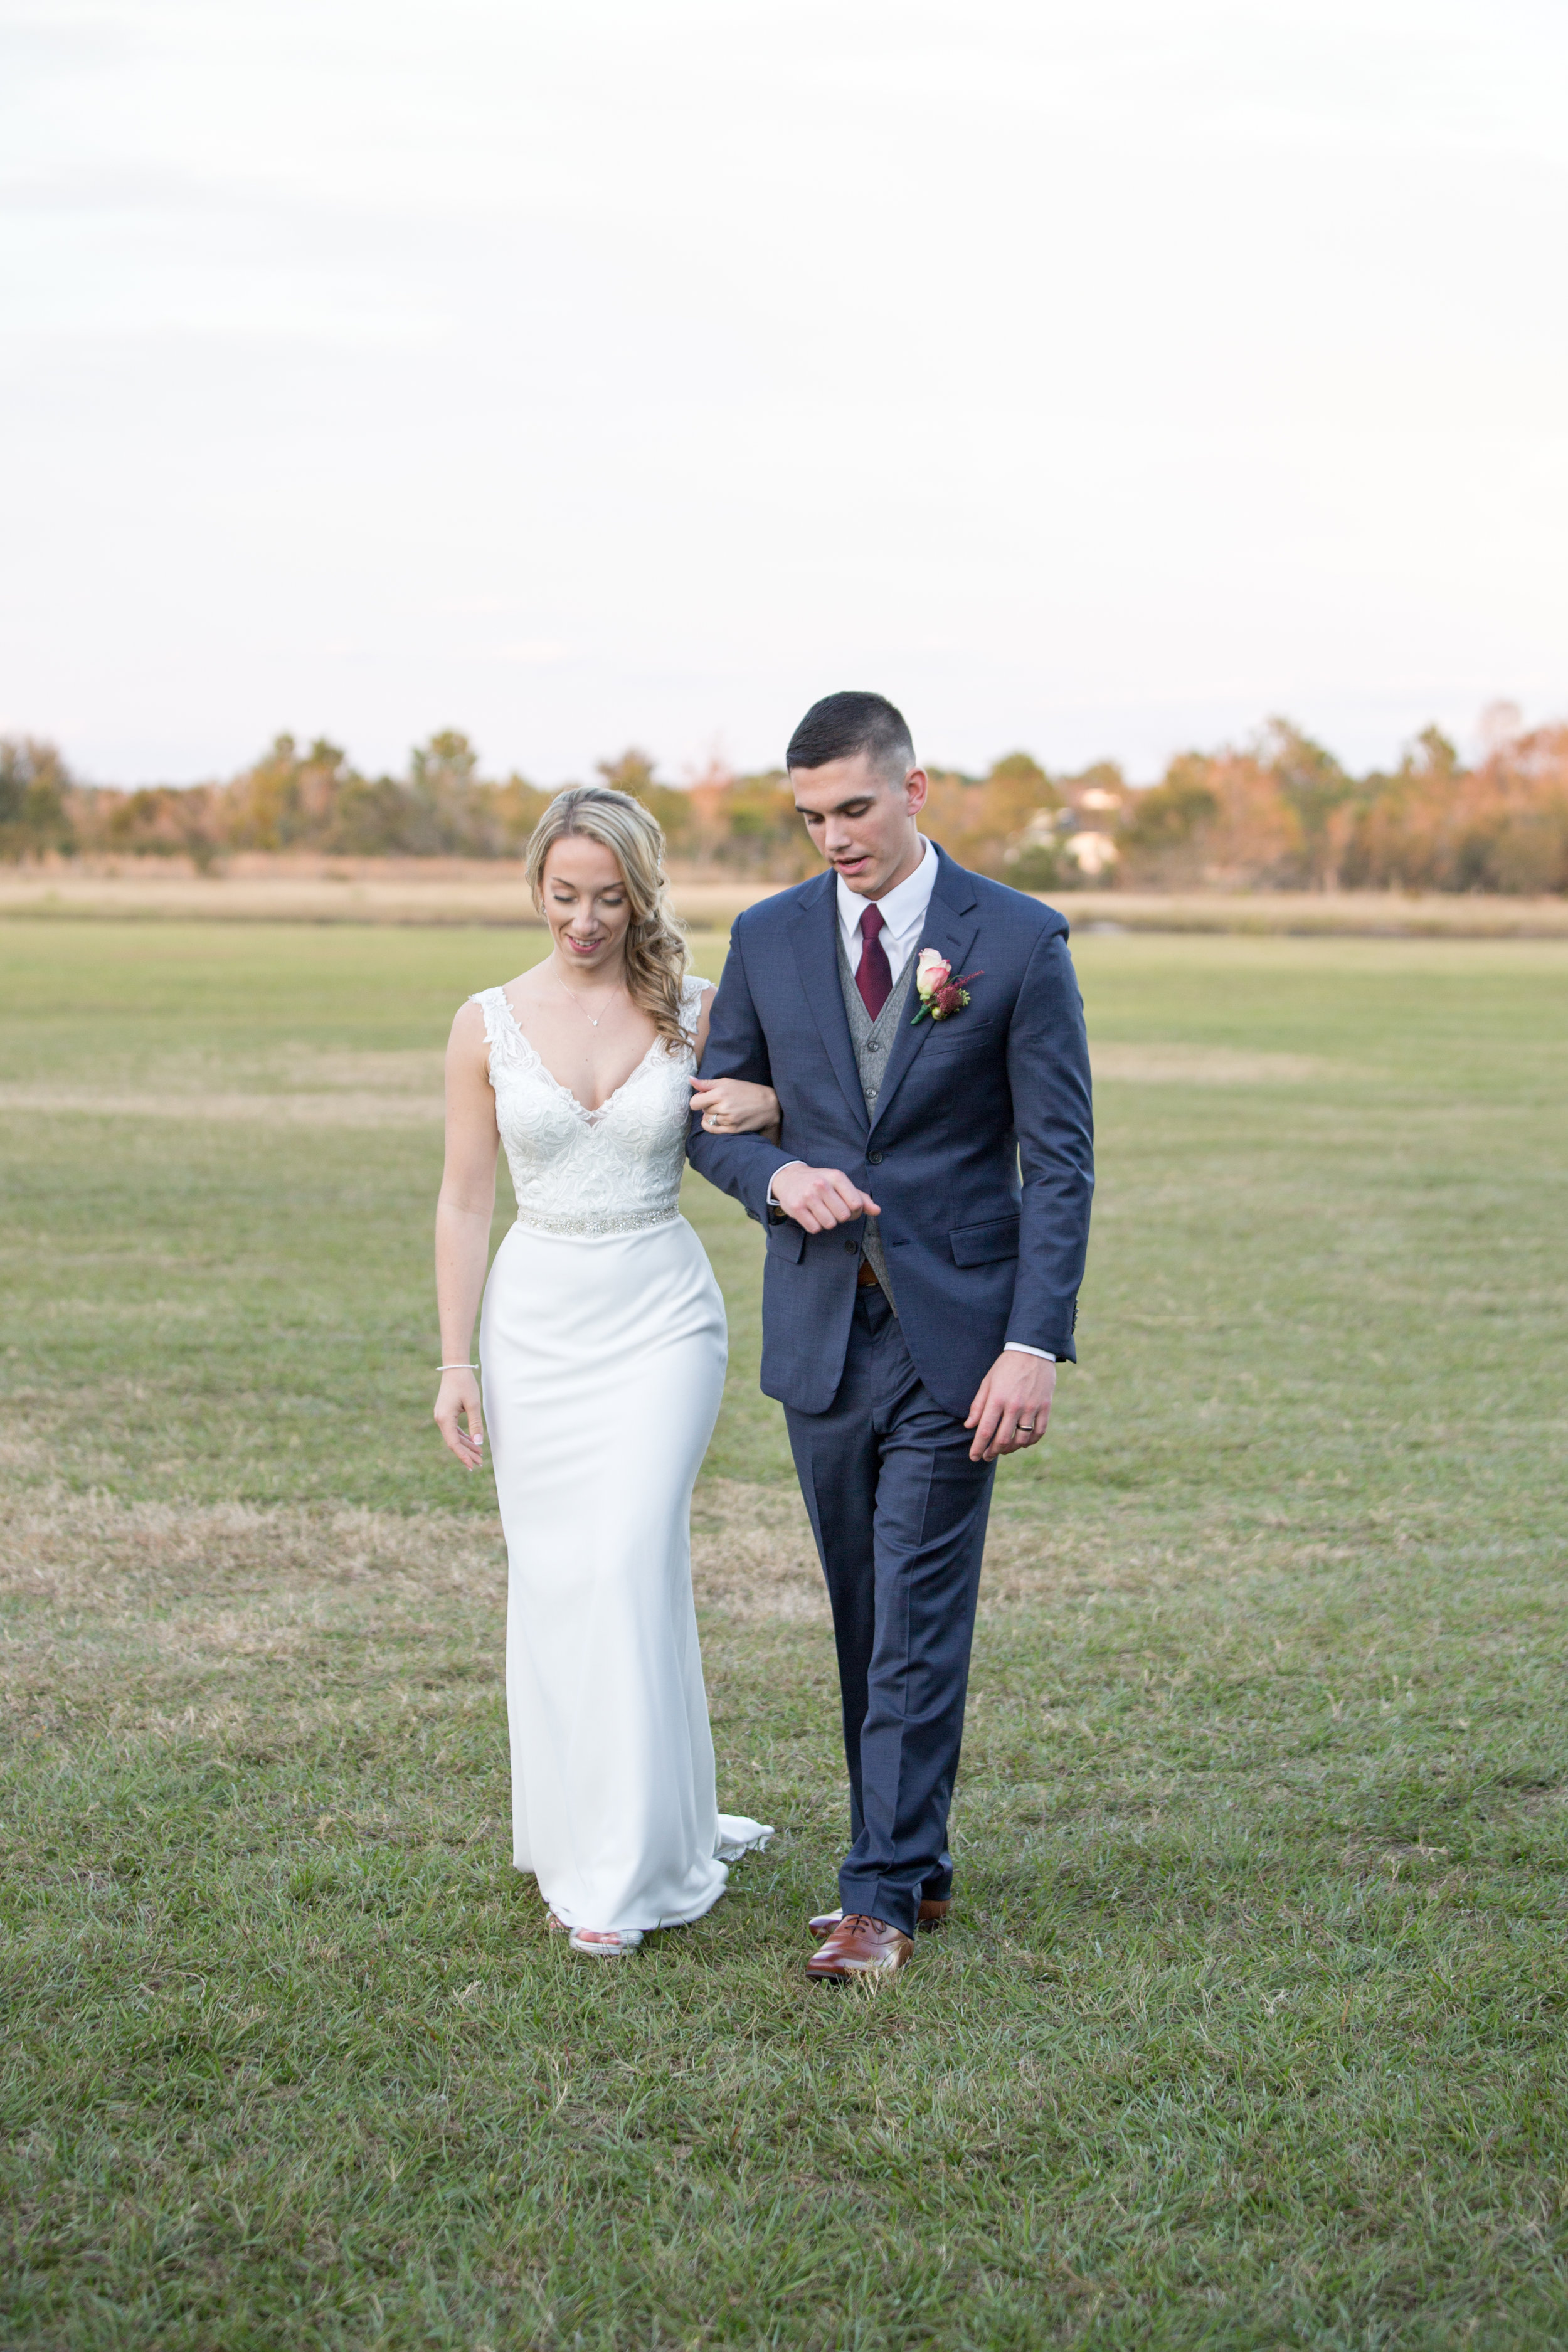 Red White and Blue Wedding -- Enchanting Barn Wedding